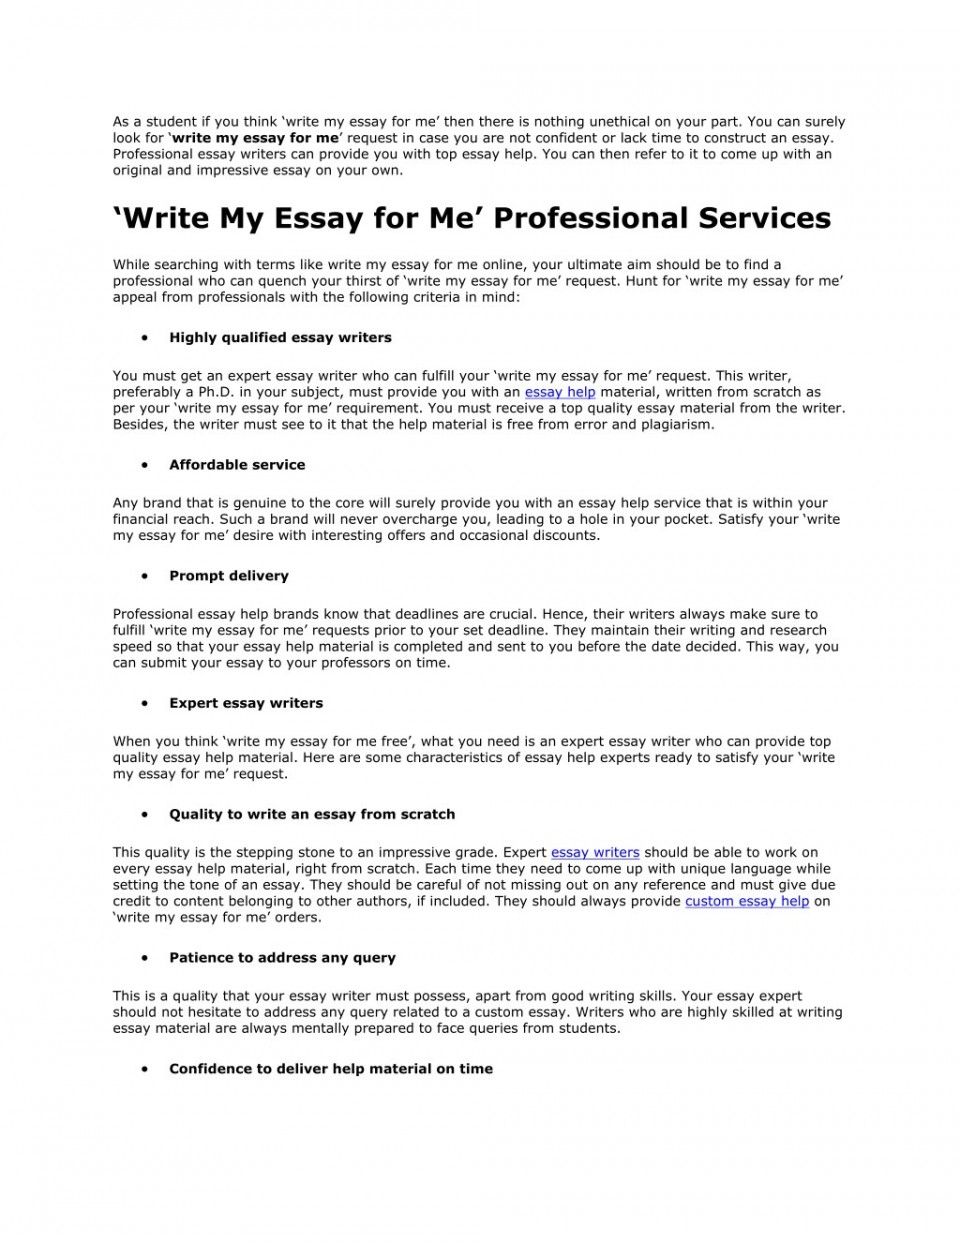 017 Write My Essay For Me Example As Student If You Think Surprising Discount Code Cheap Please 960